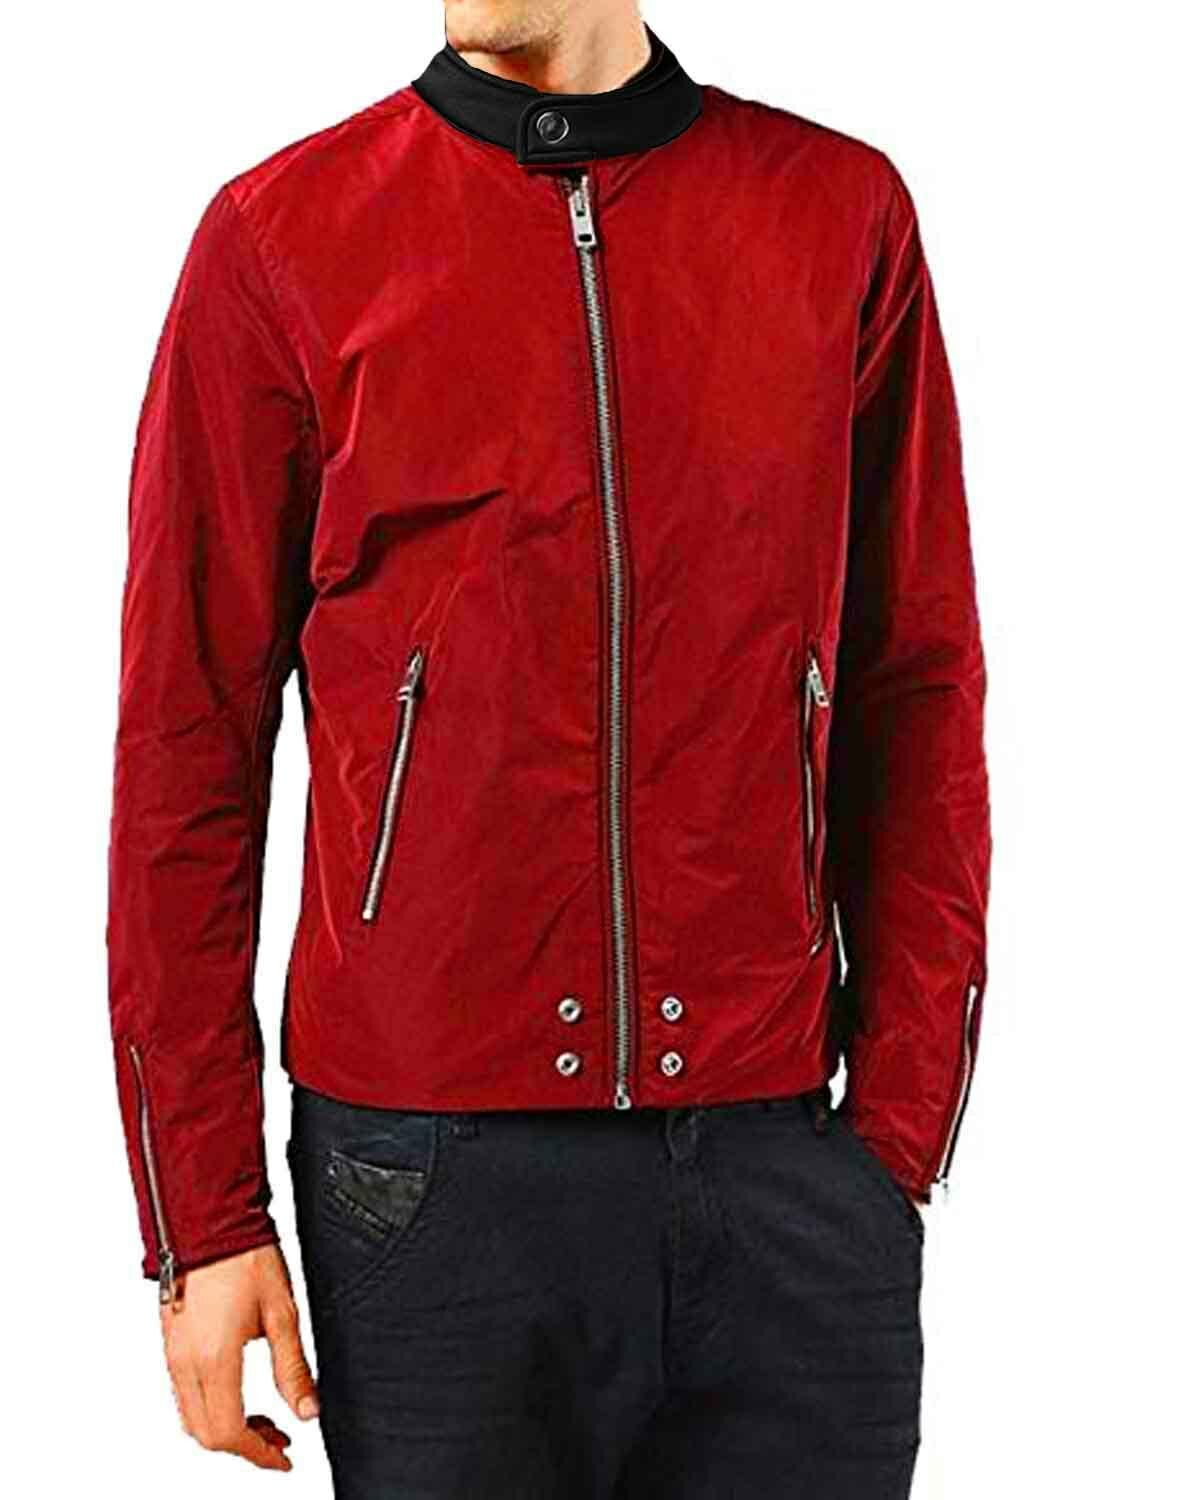 Diesel J-Edg Pulire Giacca men red